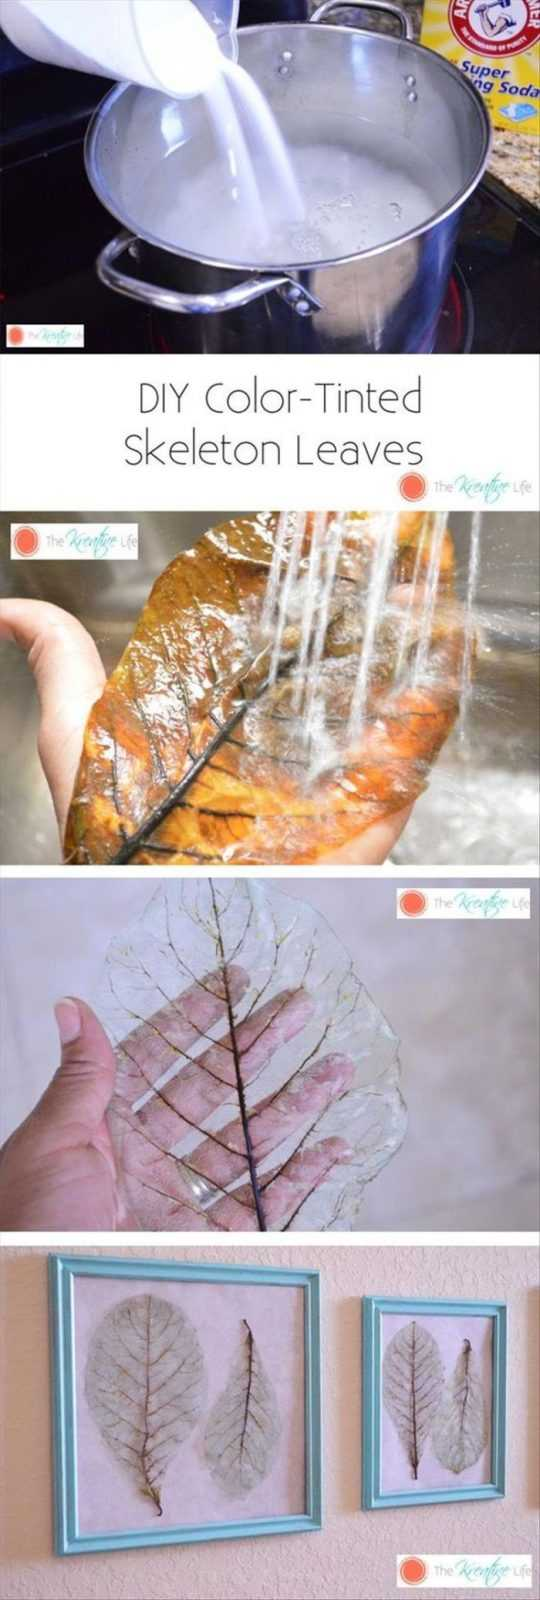 great diy project - simple-yet-great-diy-project-ideas-005